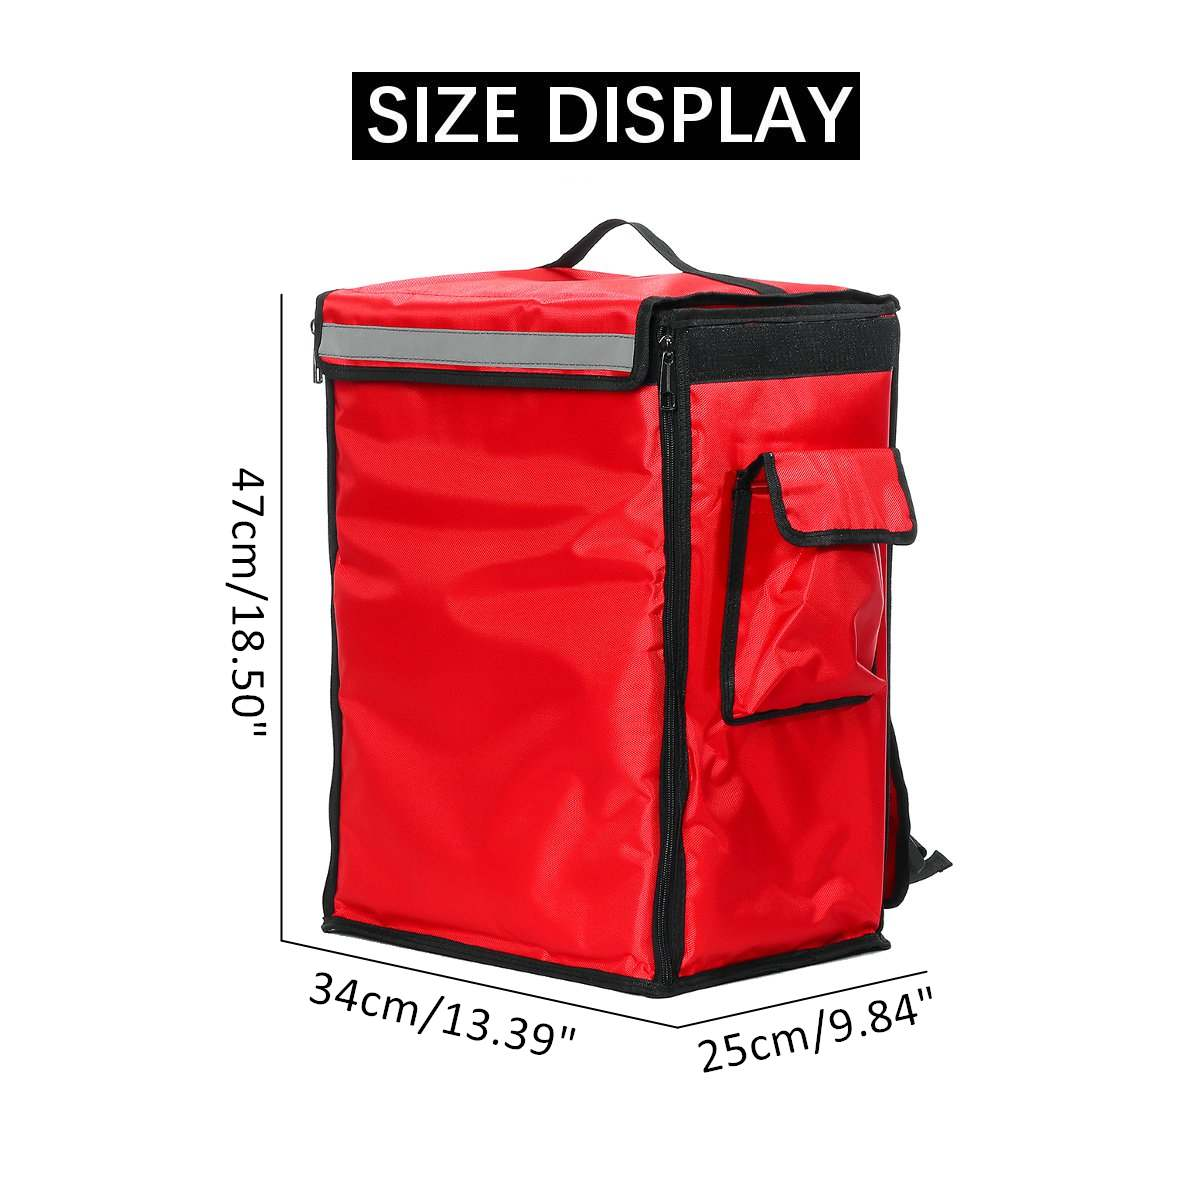 42L Thermal Insulated Bag Portable Pizza Food Delivery Bag Picnic Storage Scooter Backpack Cooler Bags Folding Insulation Pack